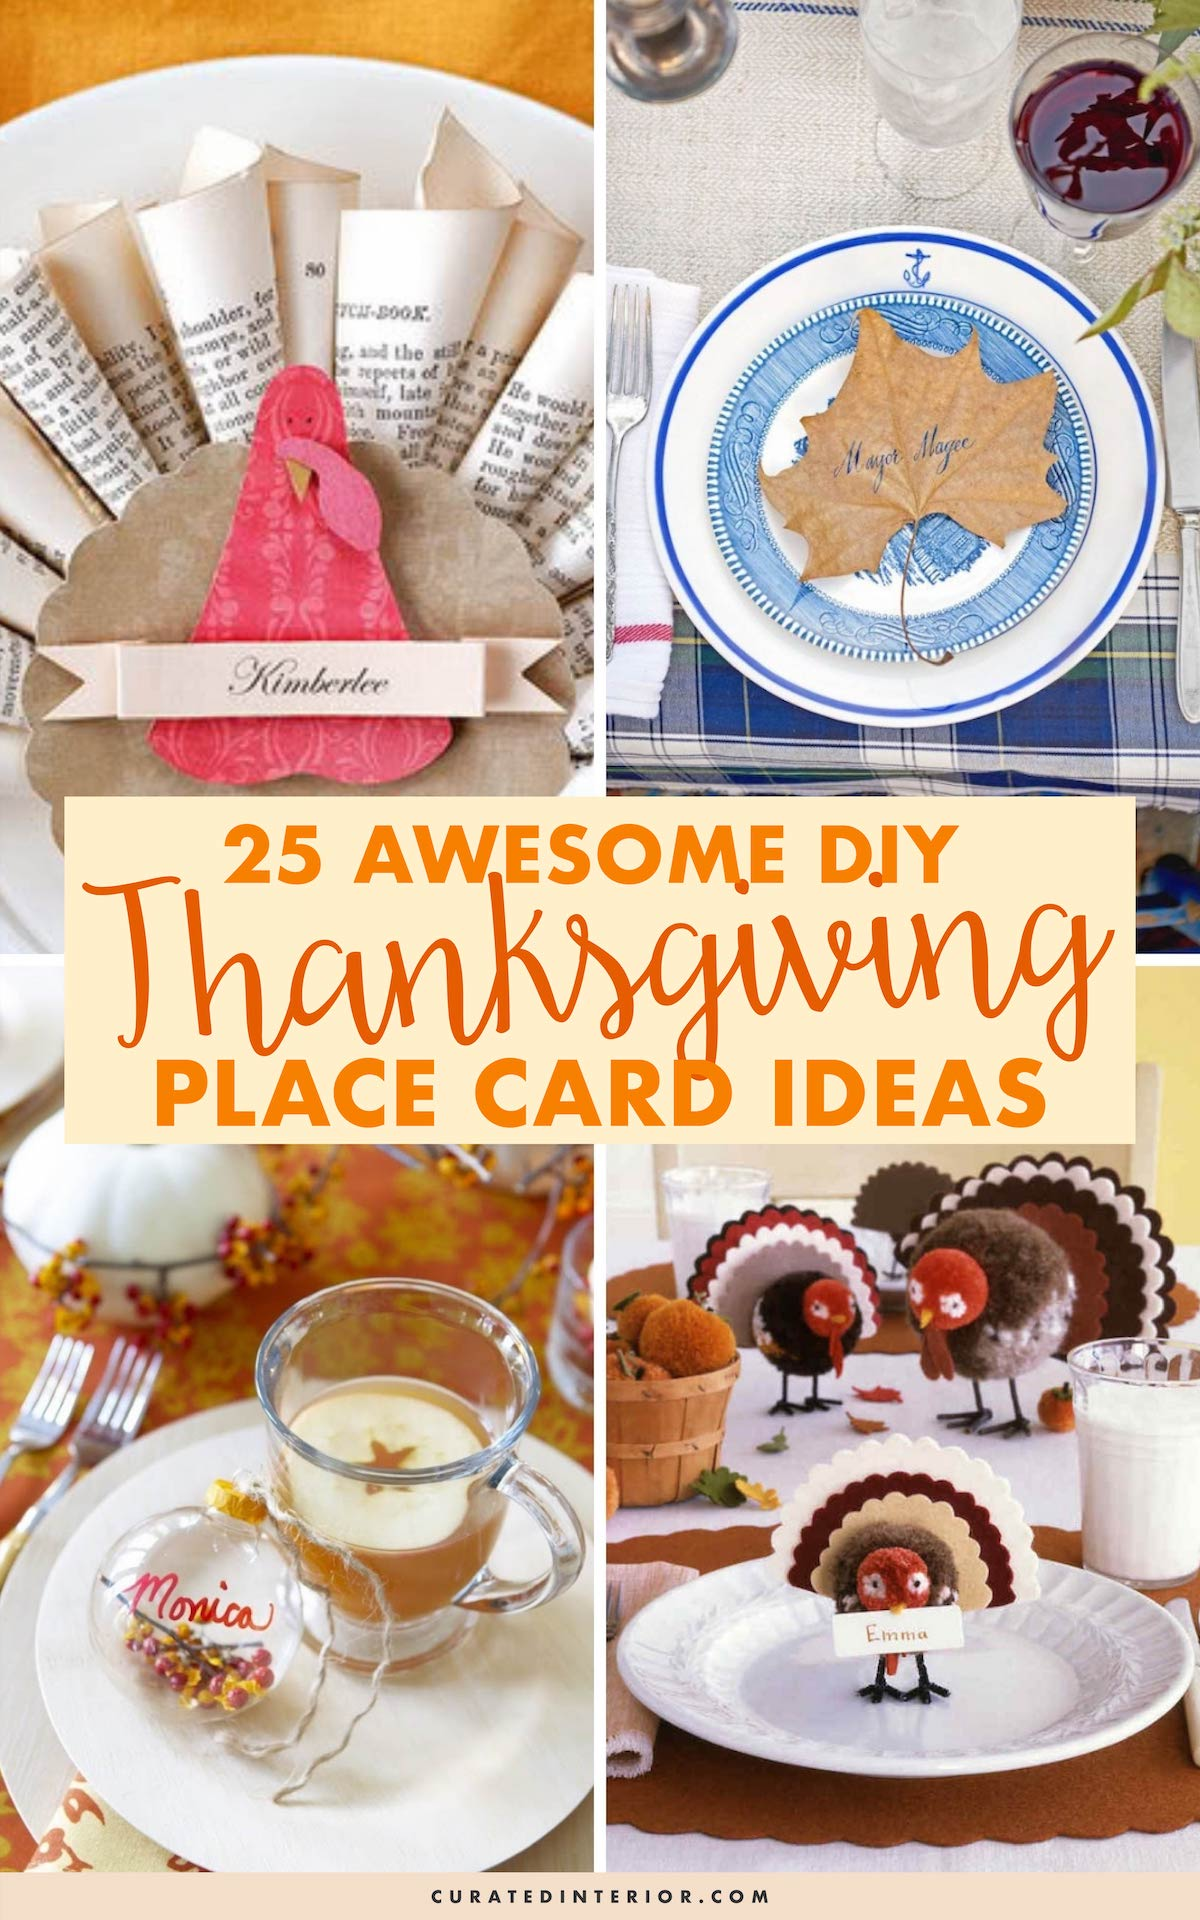 25 Awesome DIY Thanksgiving Place Card Ideas #Thanksgiving #ThanksgivingDecor #ThanksgivingTable #ThanksgivingTableDecor